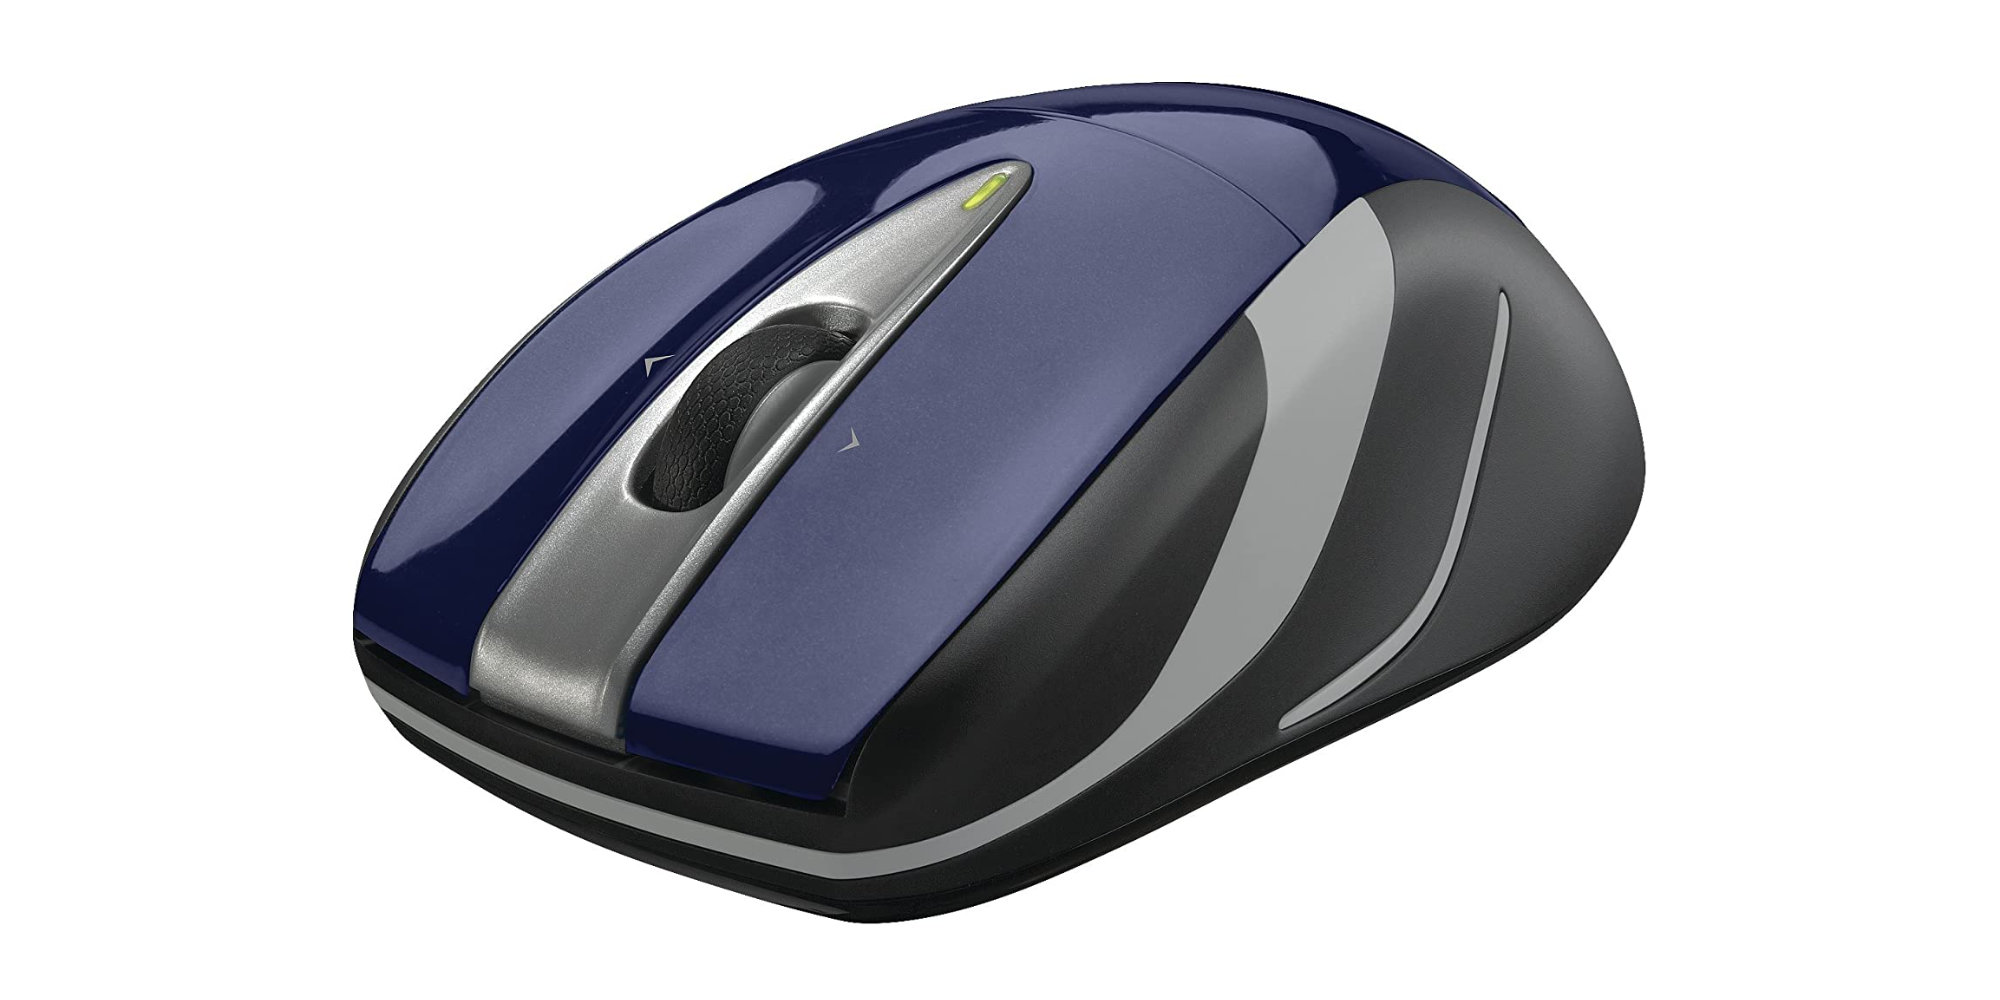 Logitech mice are up to 62% off at Amazon, now priced from $15